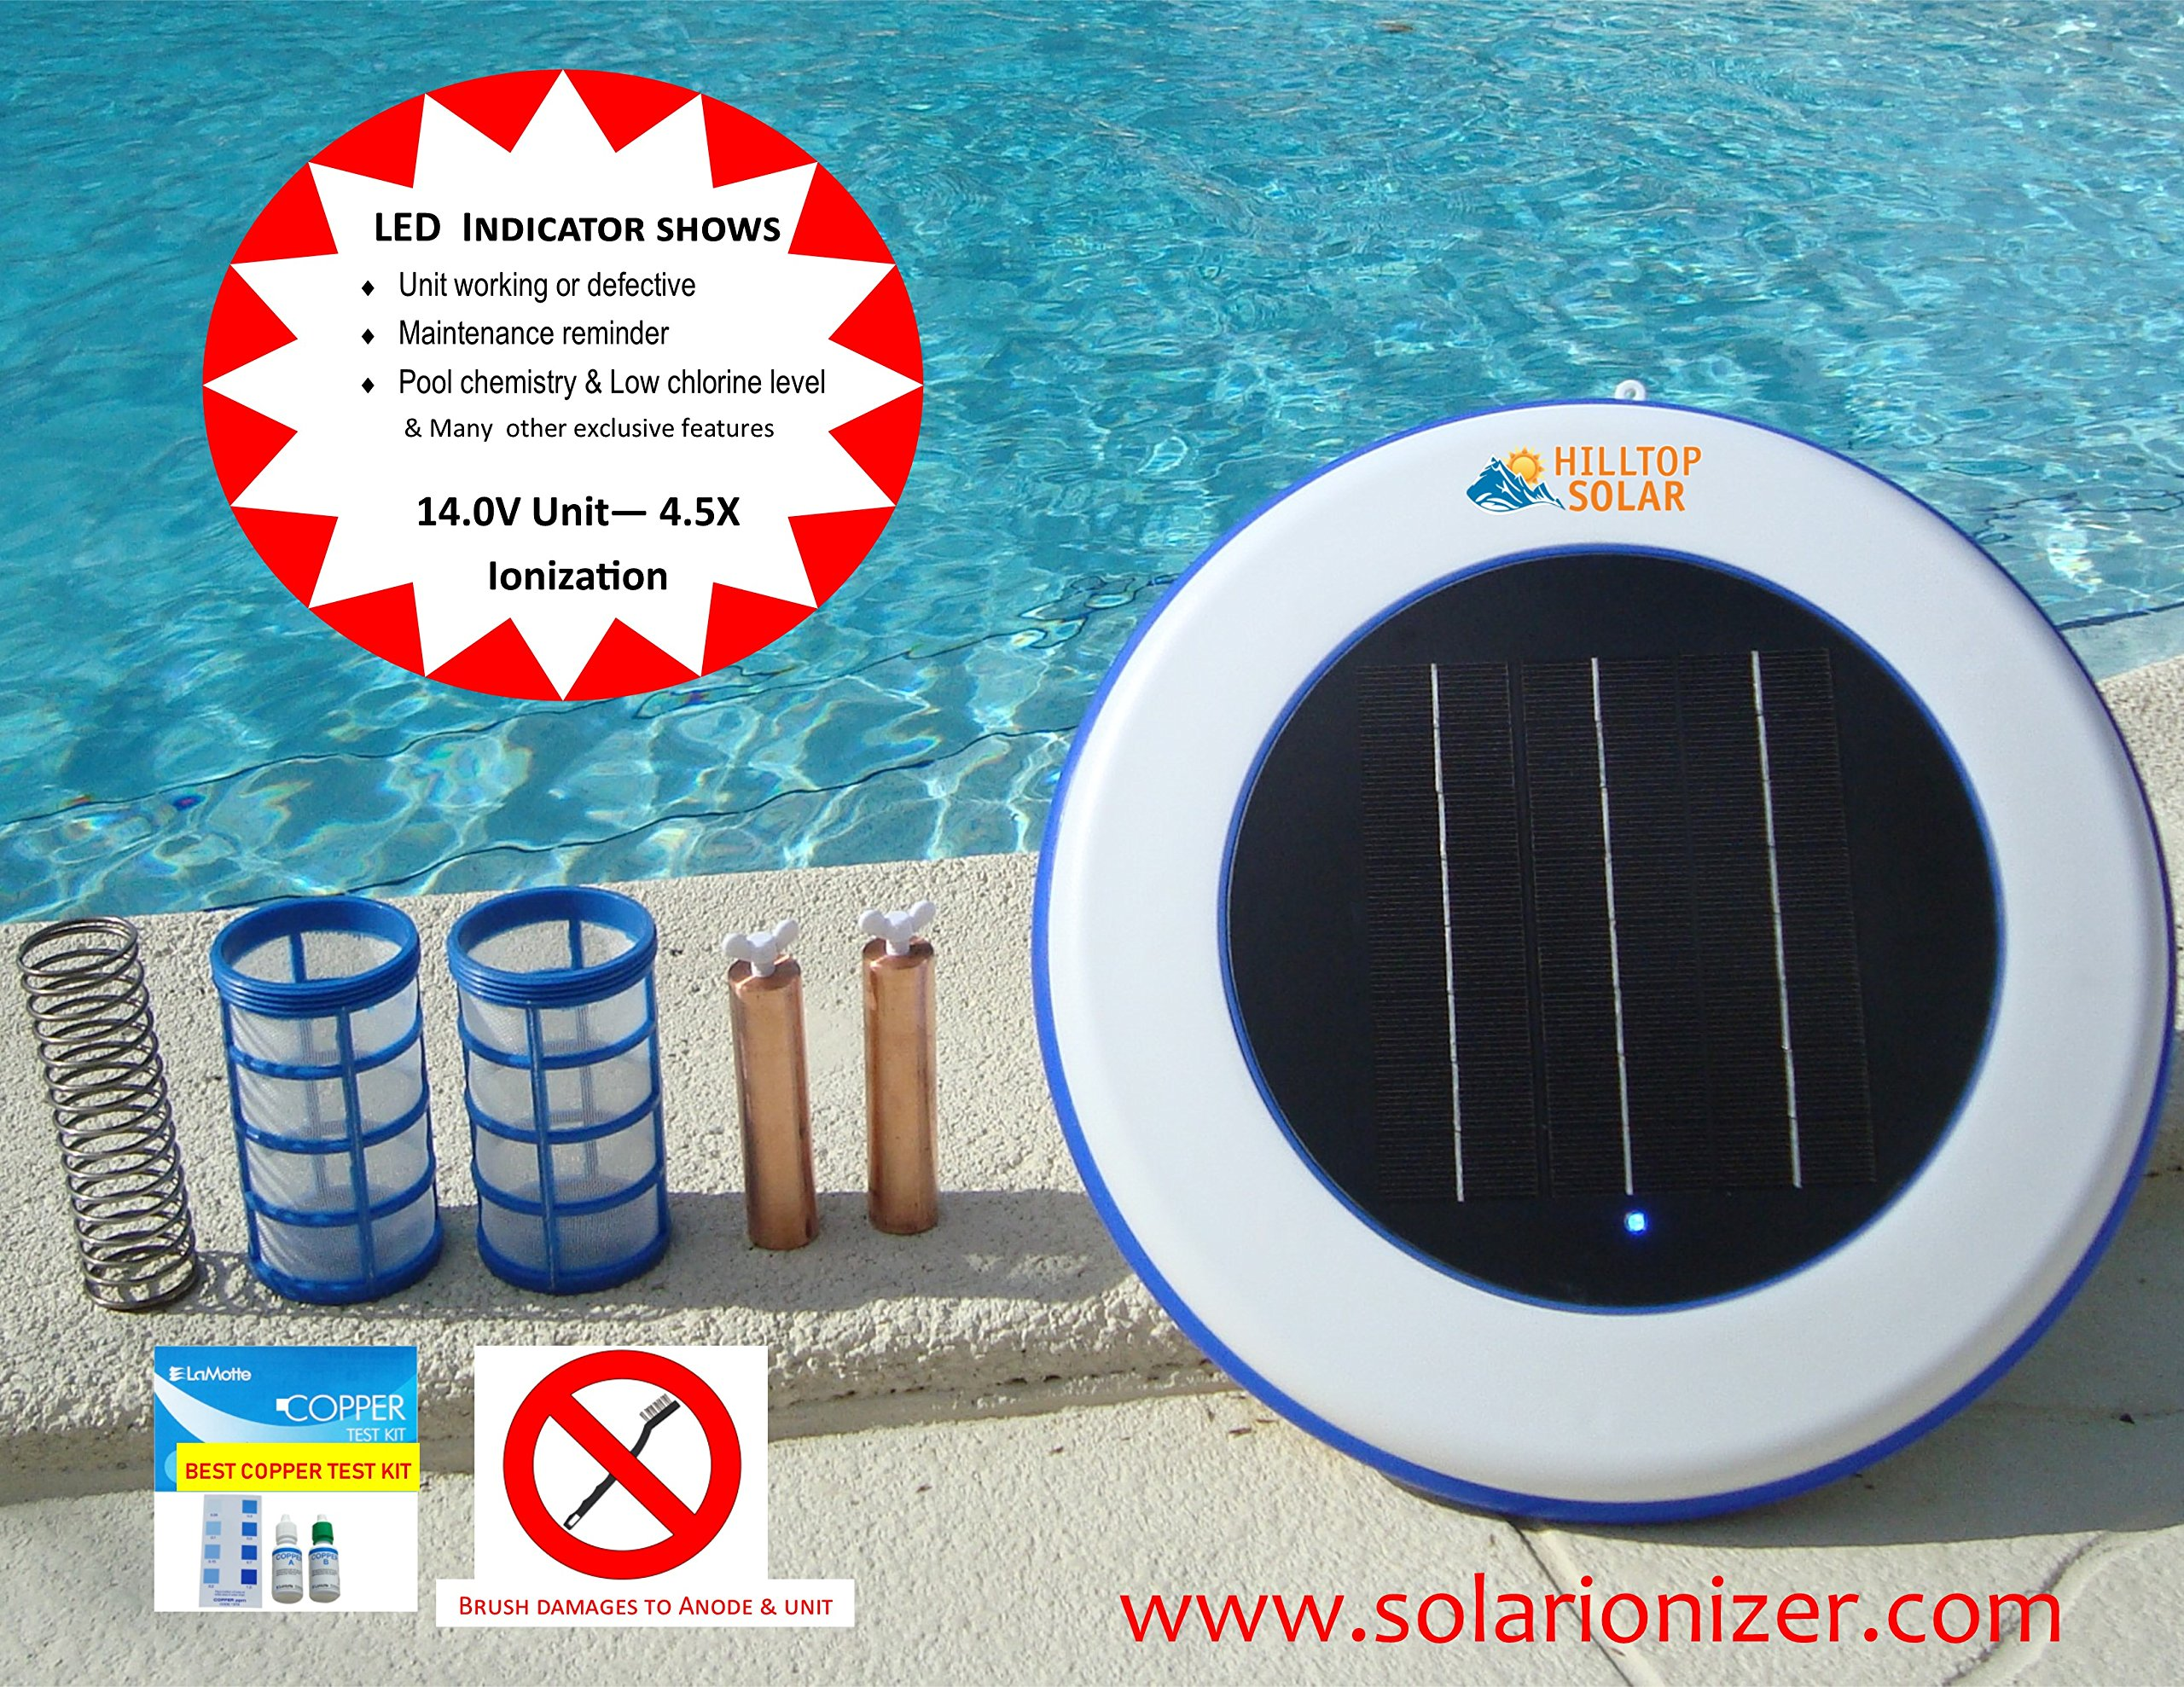 Solar Swimming Pool Ionizer (14.0V - 4.5X Ionization power) with LED On/Off Indicator - 2-Copper Anodes/Baskets/Wingscrews -Effective upto 40,000 gallons - NO SALES TAX